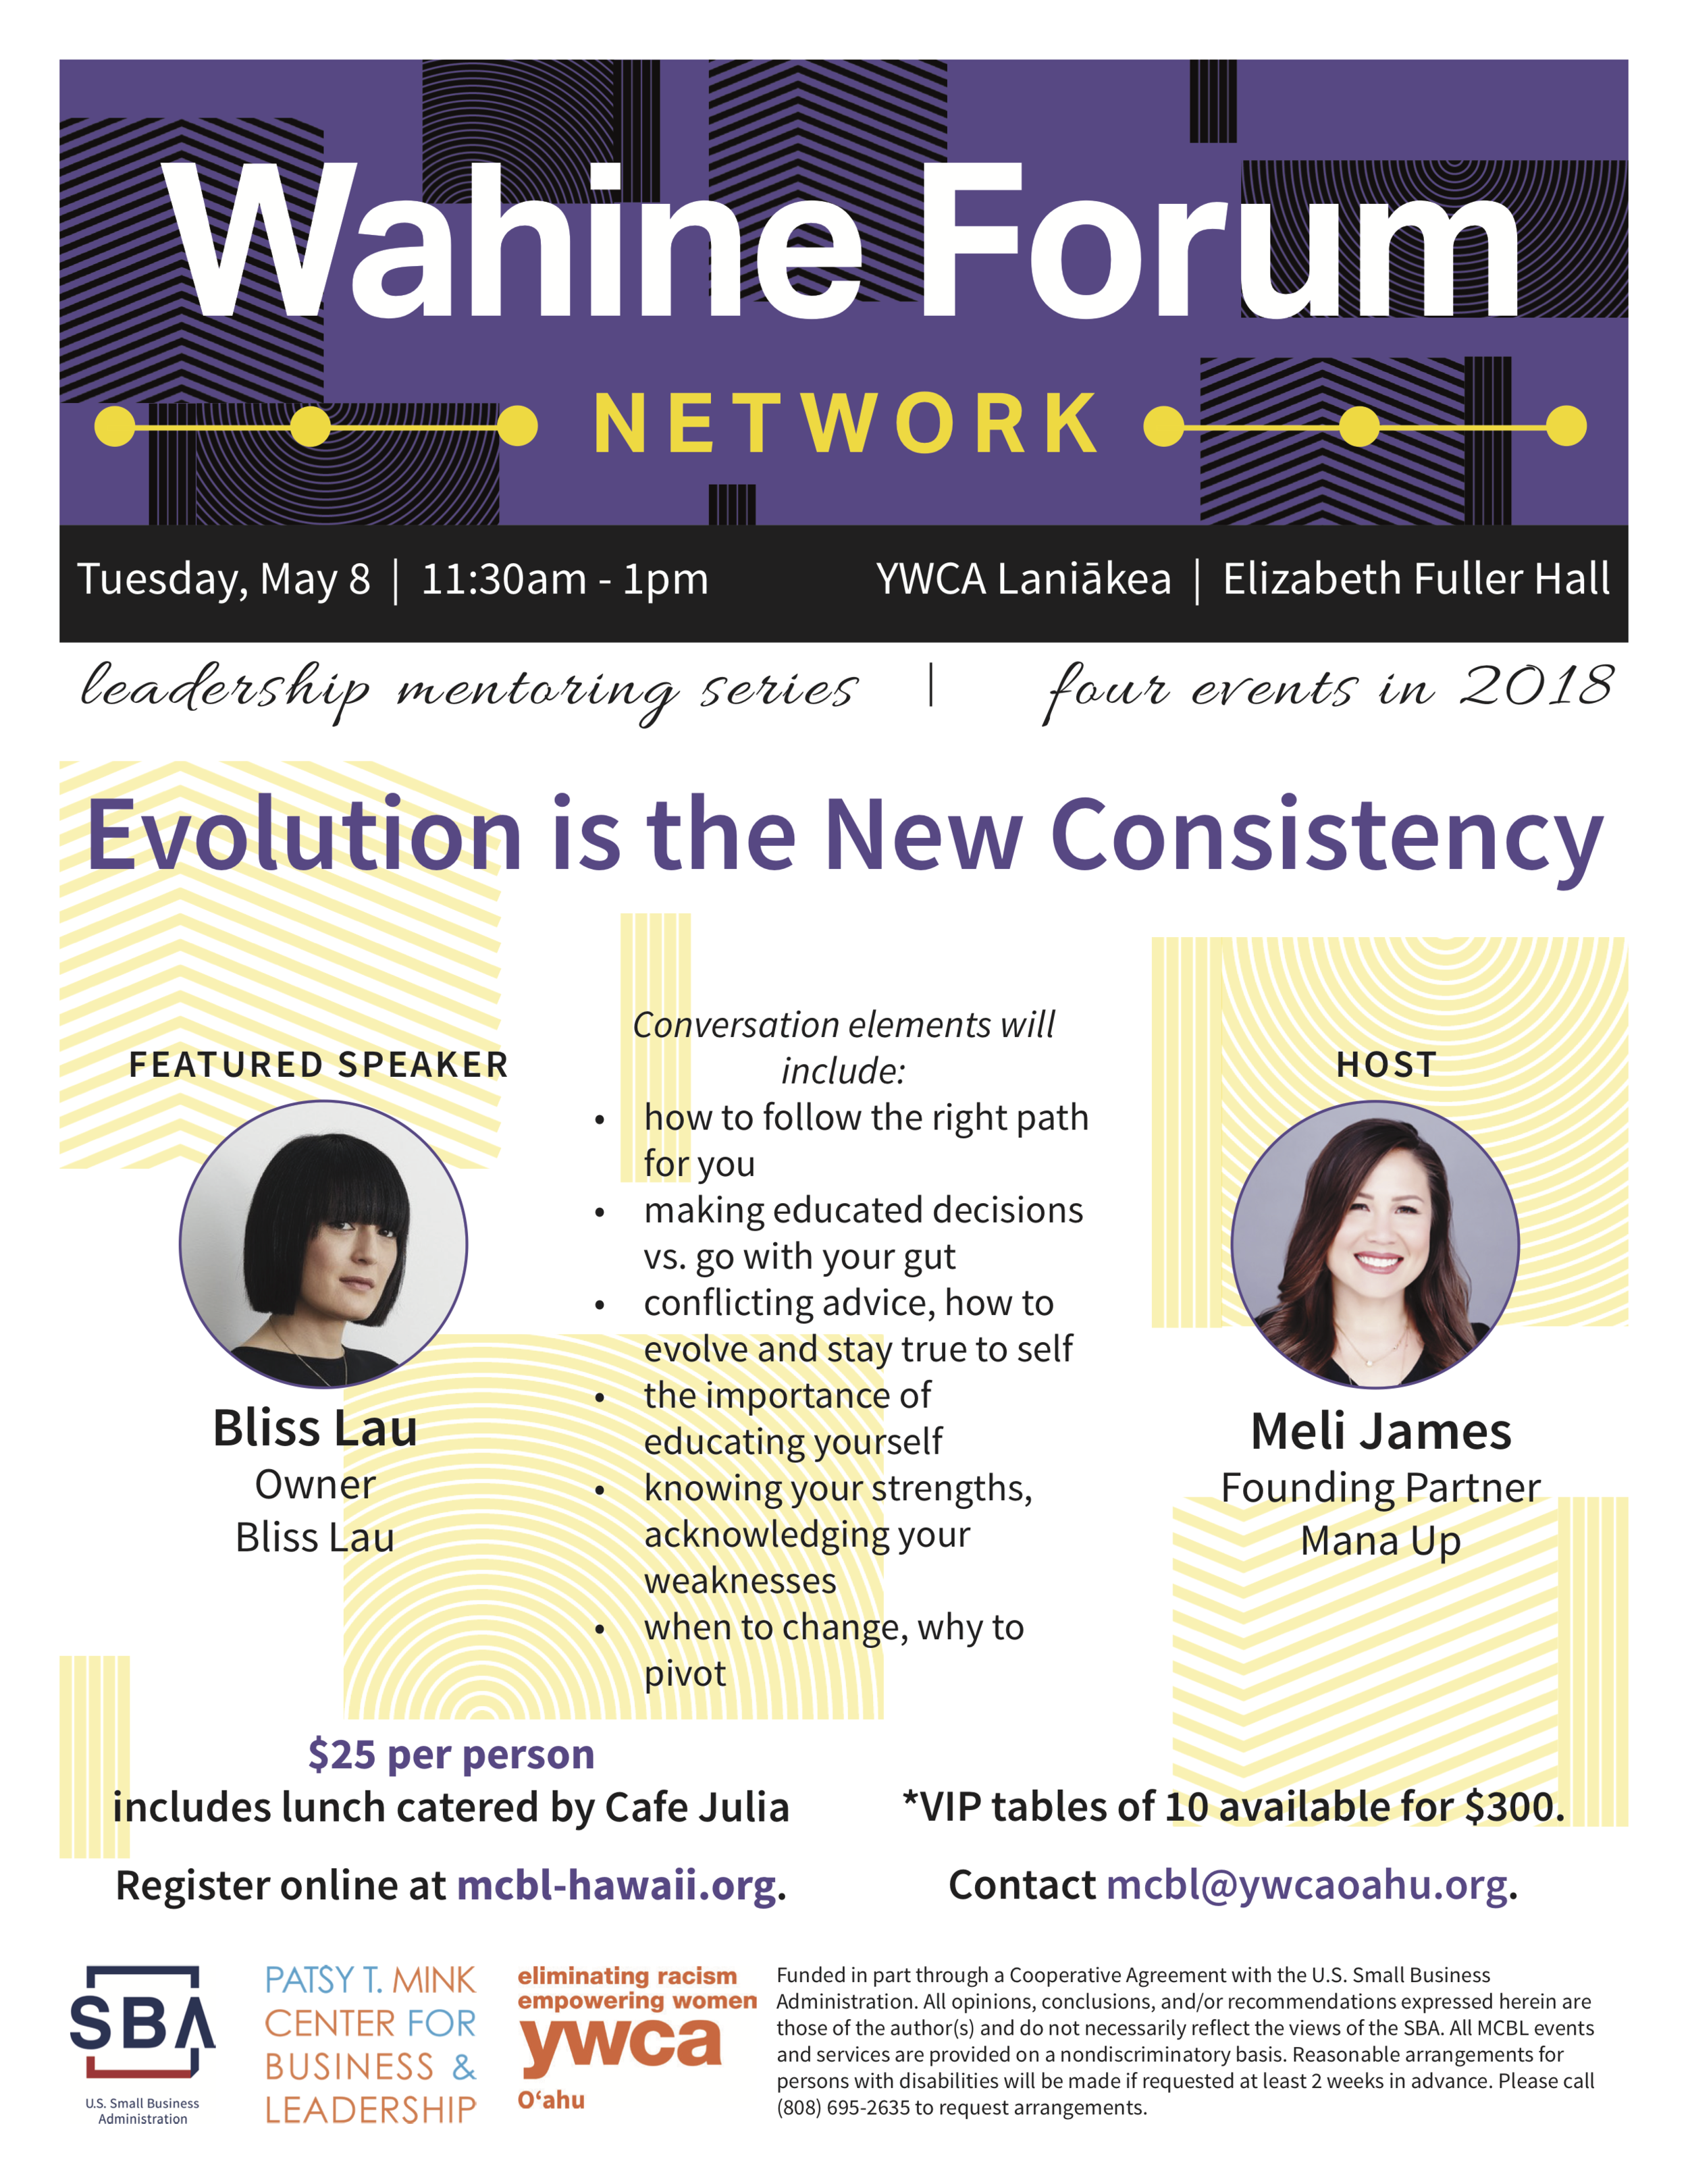 Wahine Forum Network Draft 2.png